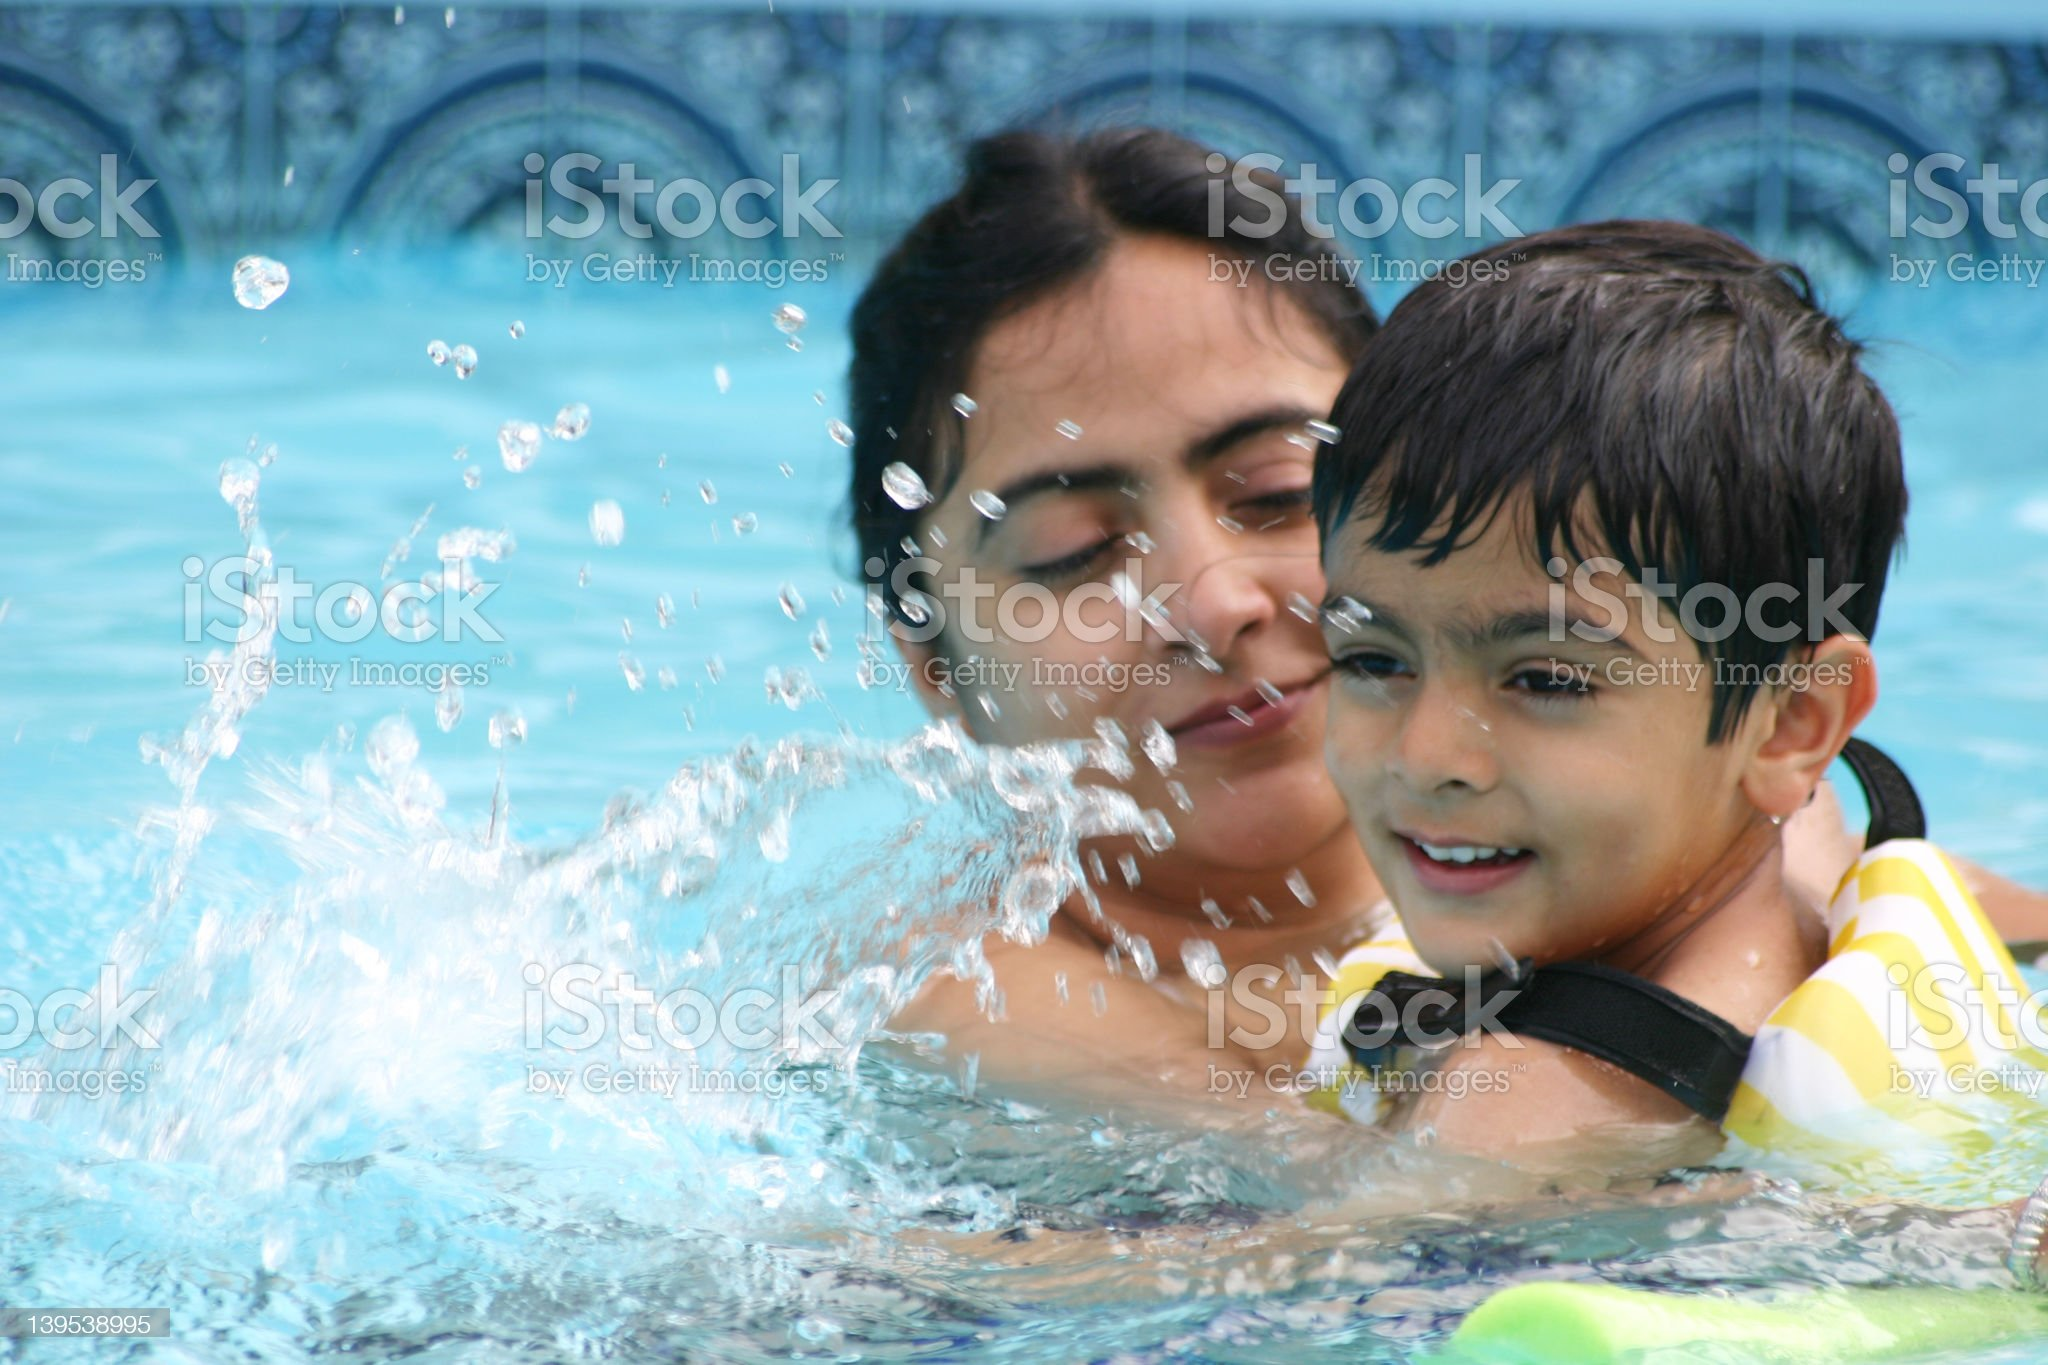 Summer in the pool royalty-free stock photo